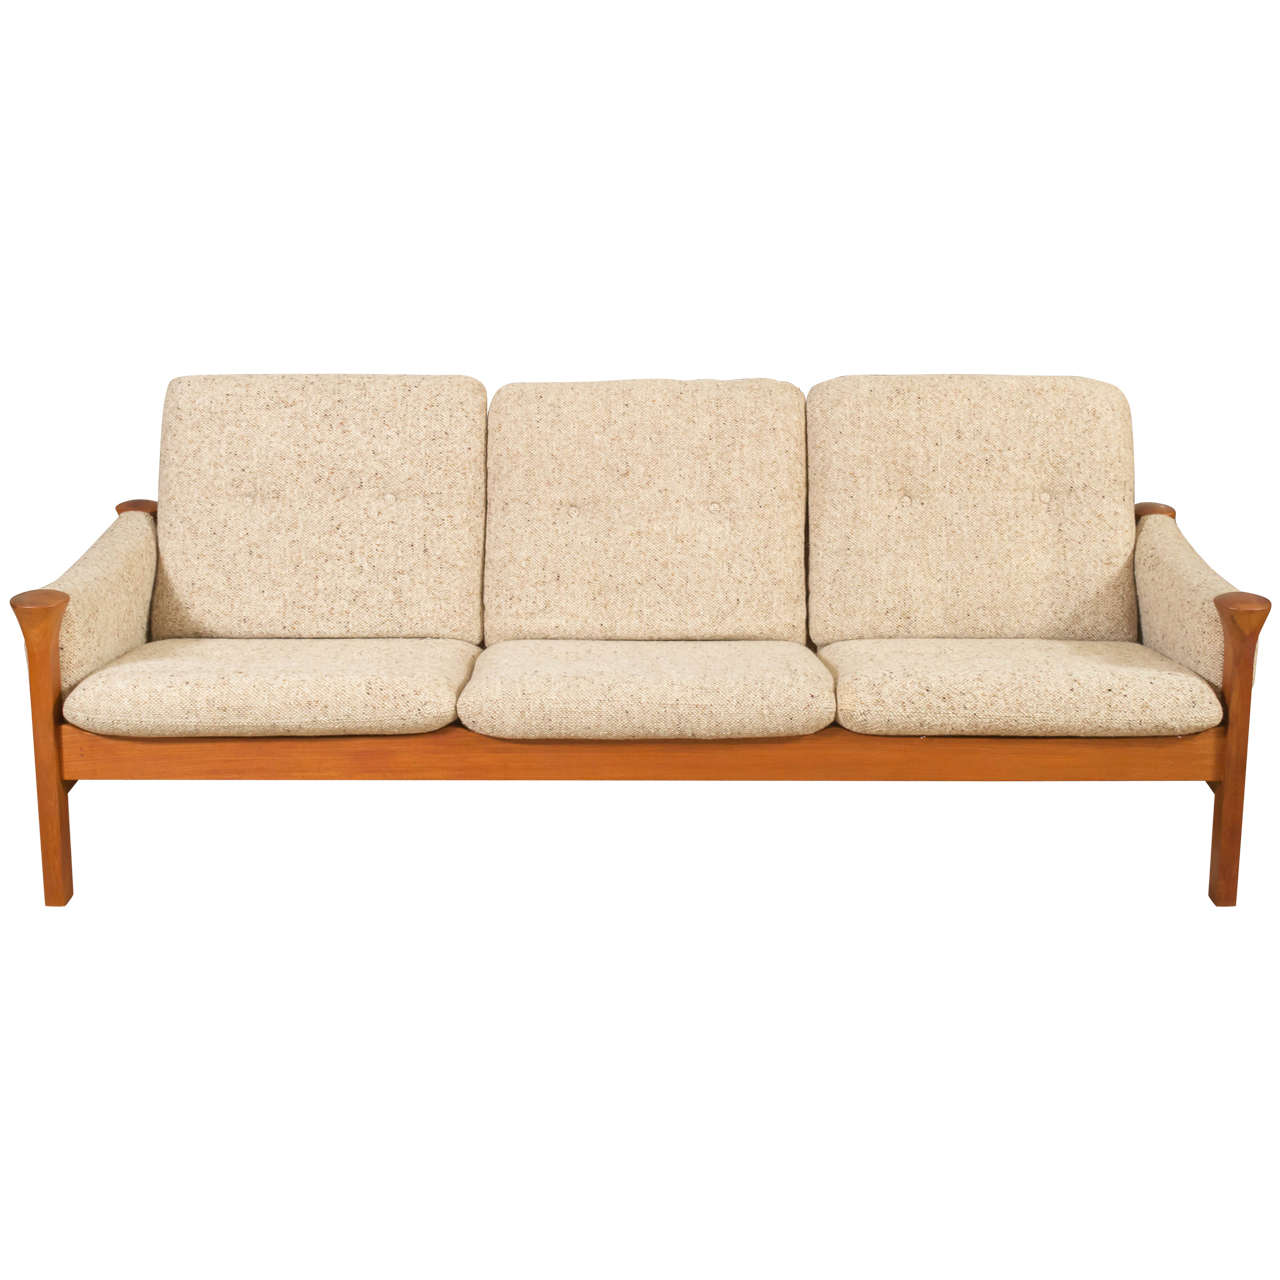 Teak Arne Vodder For Cado Sofa 1